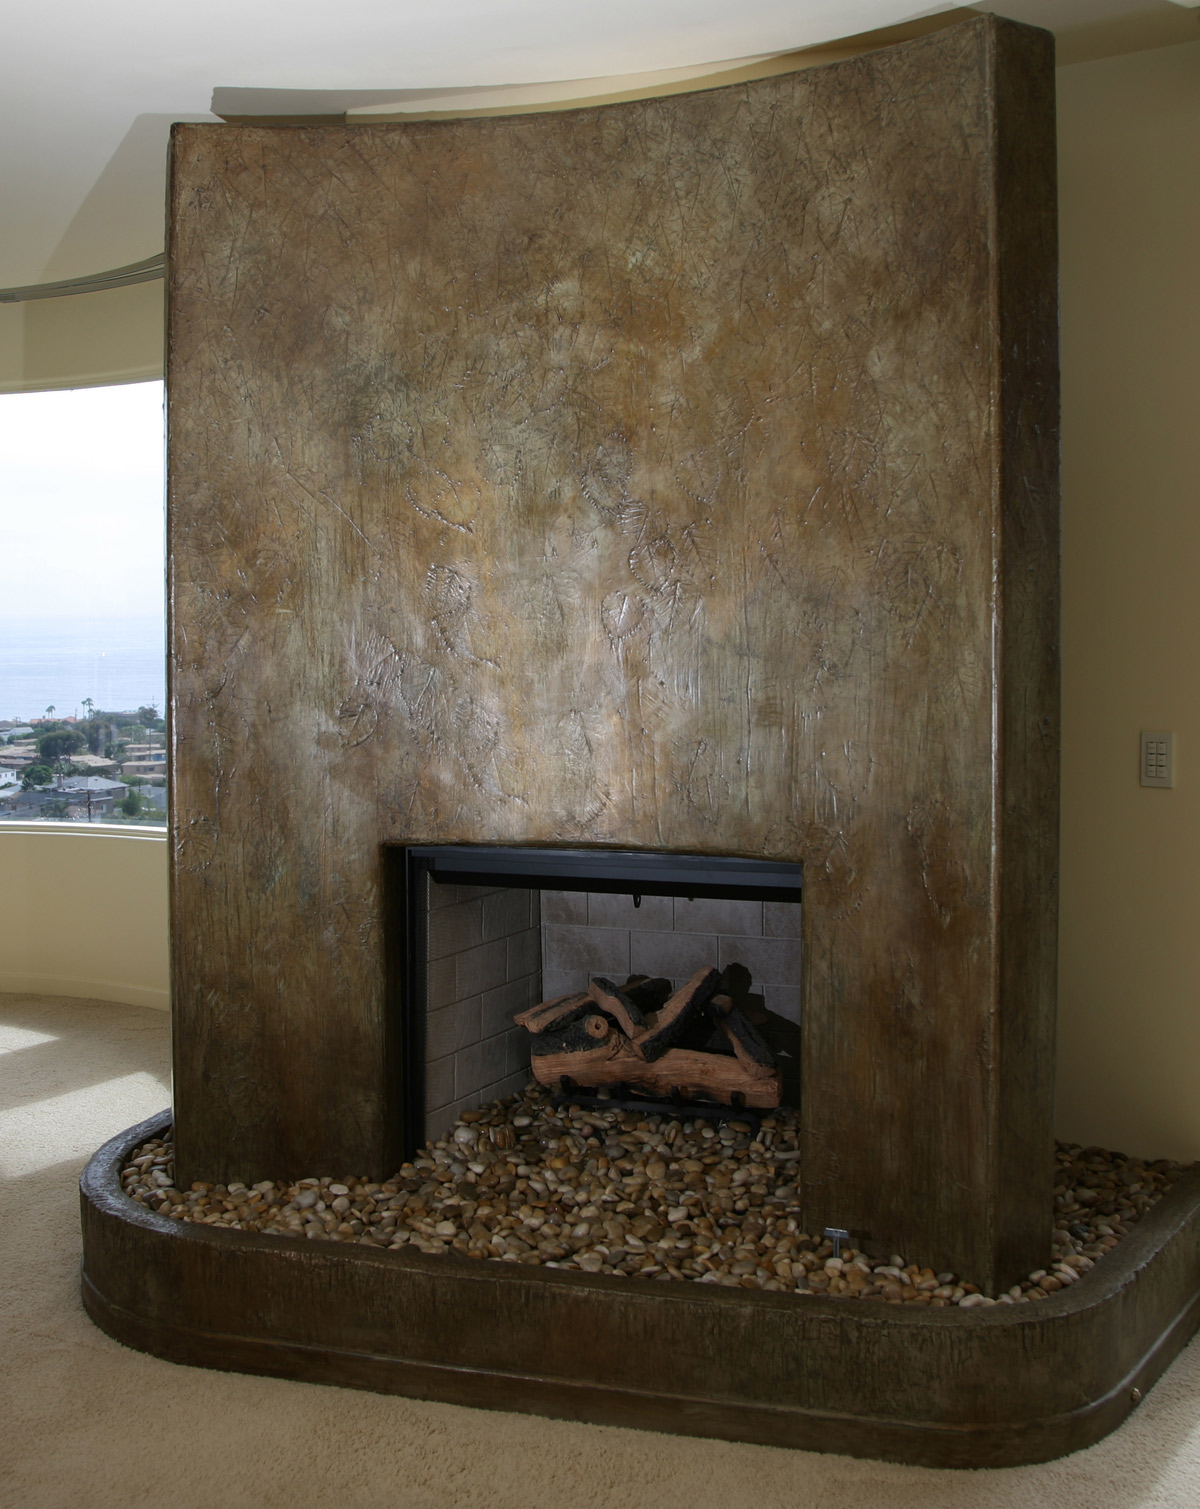 Wandmanufaktur on pinterest by farbelite plaster wall treatments and damask wall stencils - Fireplace finish ideas ...